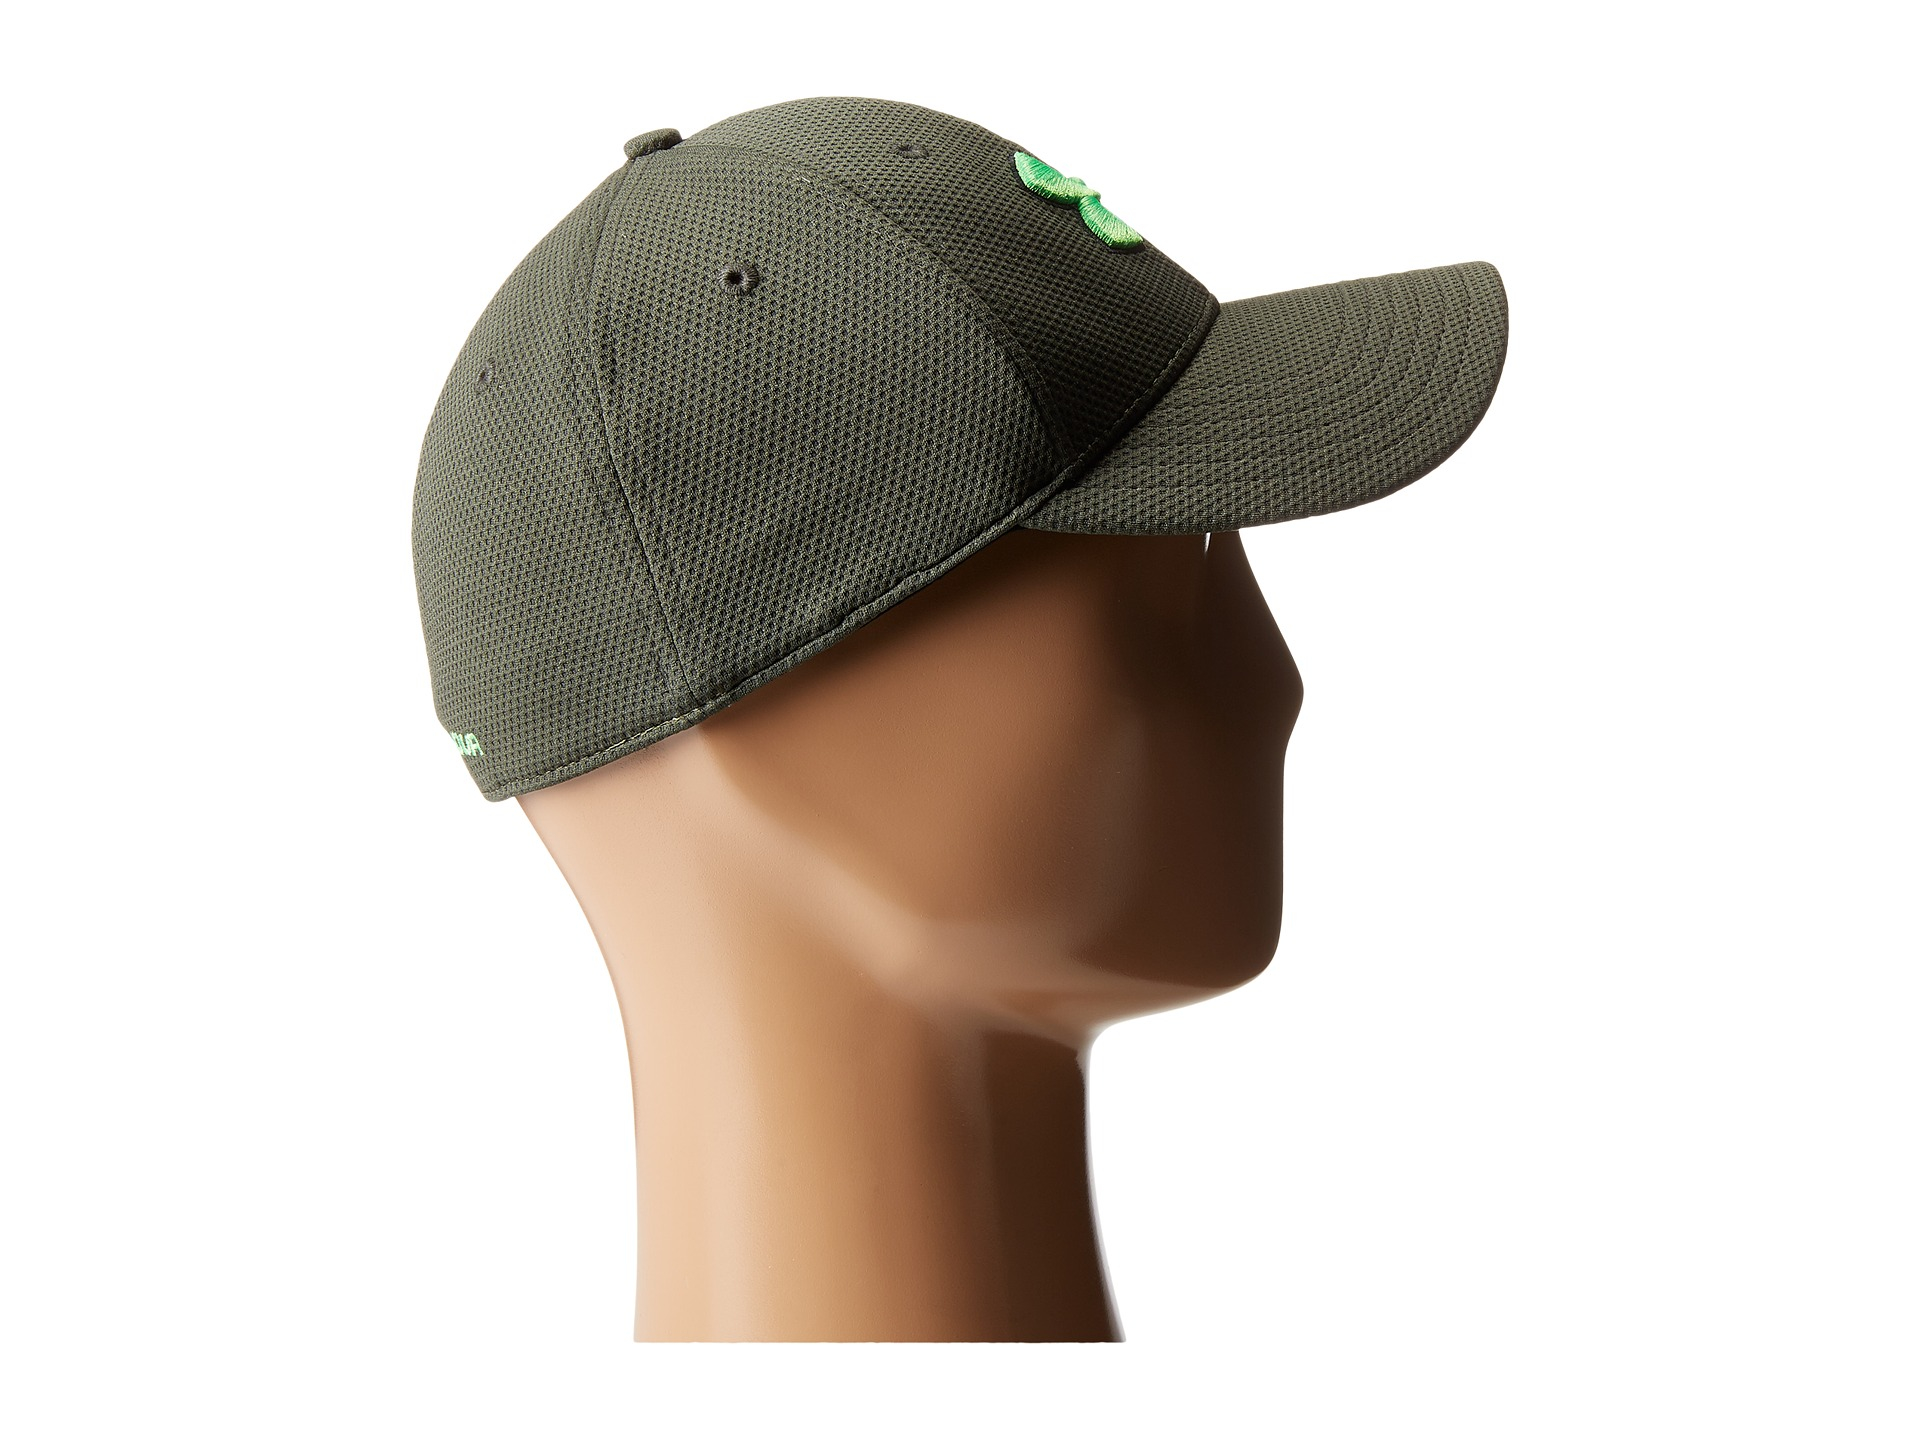 bfb7081a343 Lyst - Under Armour Ua Blitzing Ii Stretch Fit Cap in Green for Men